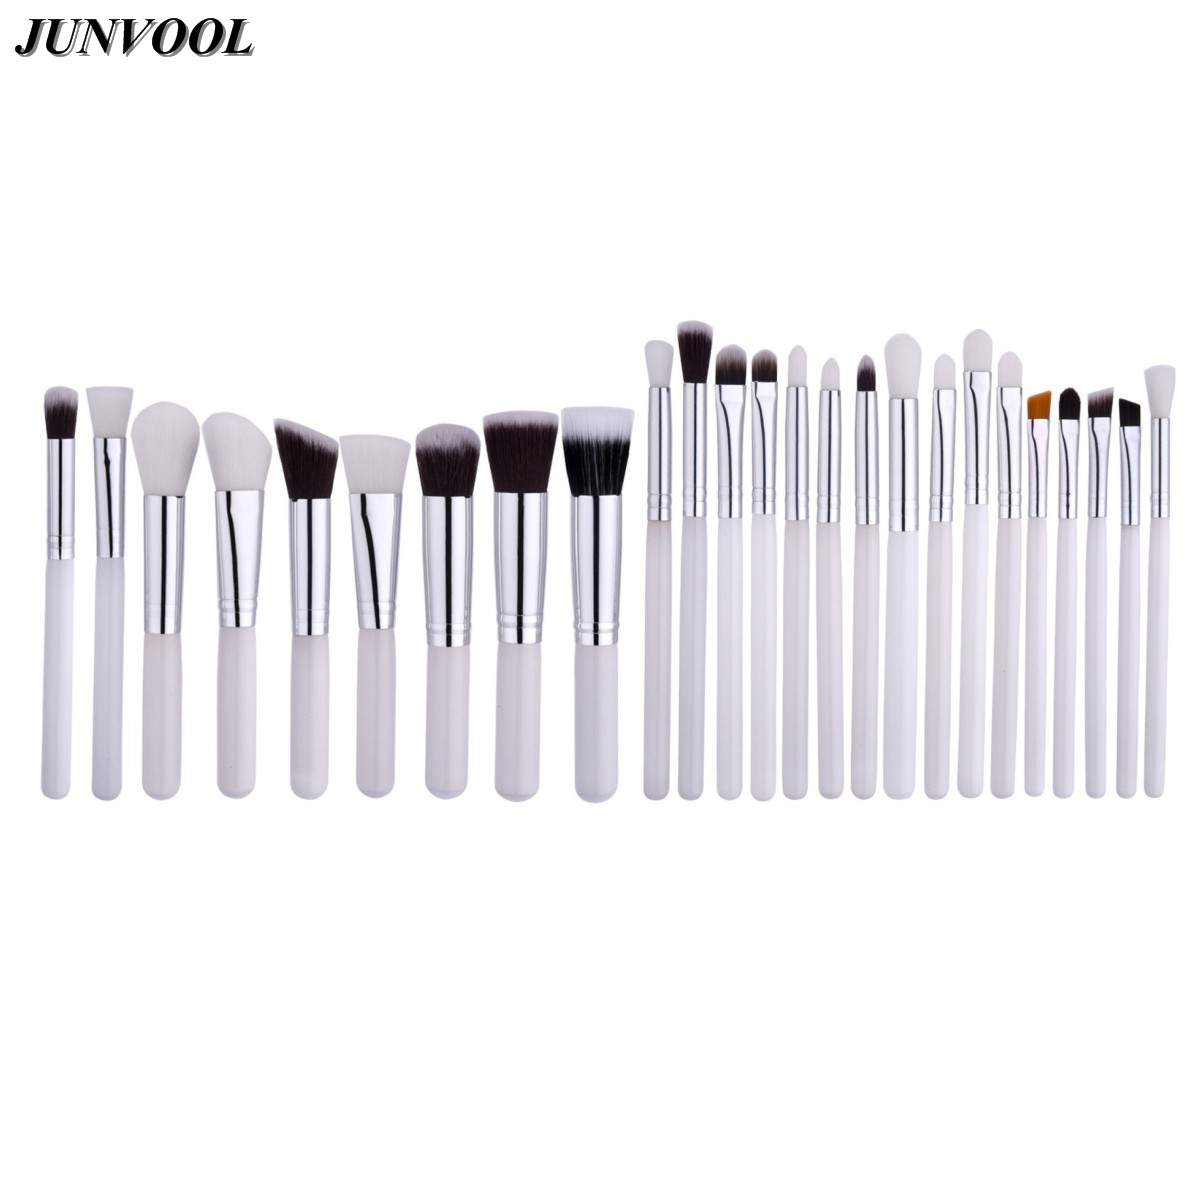 25Pcs Makeup Brushes Set Professional Make Up Tools Kit Powder Foundation Eyeshadow Eyeliner Cosmetic Beauty Blushes White&Black купить